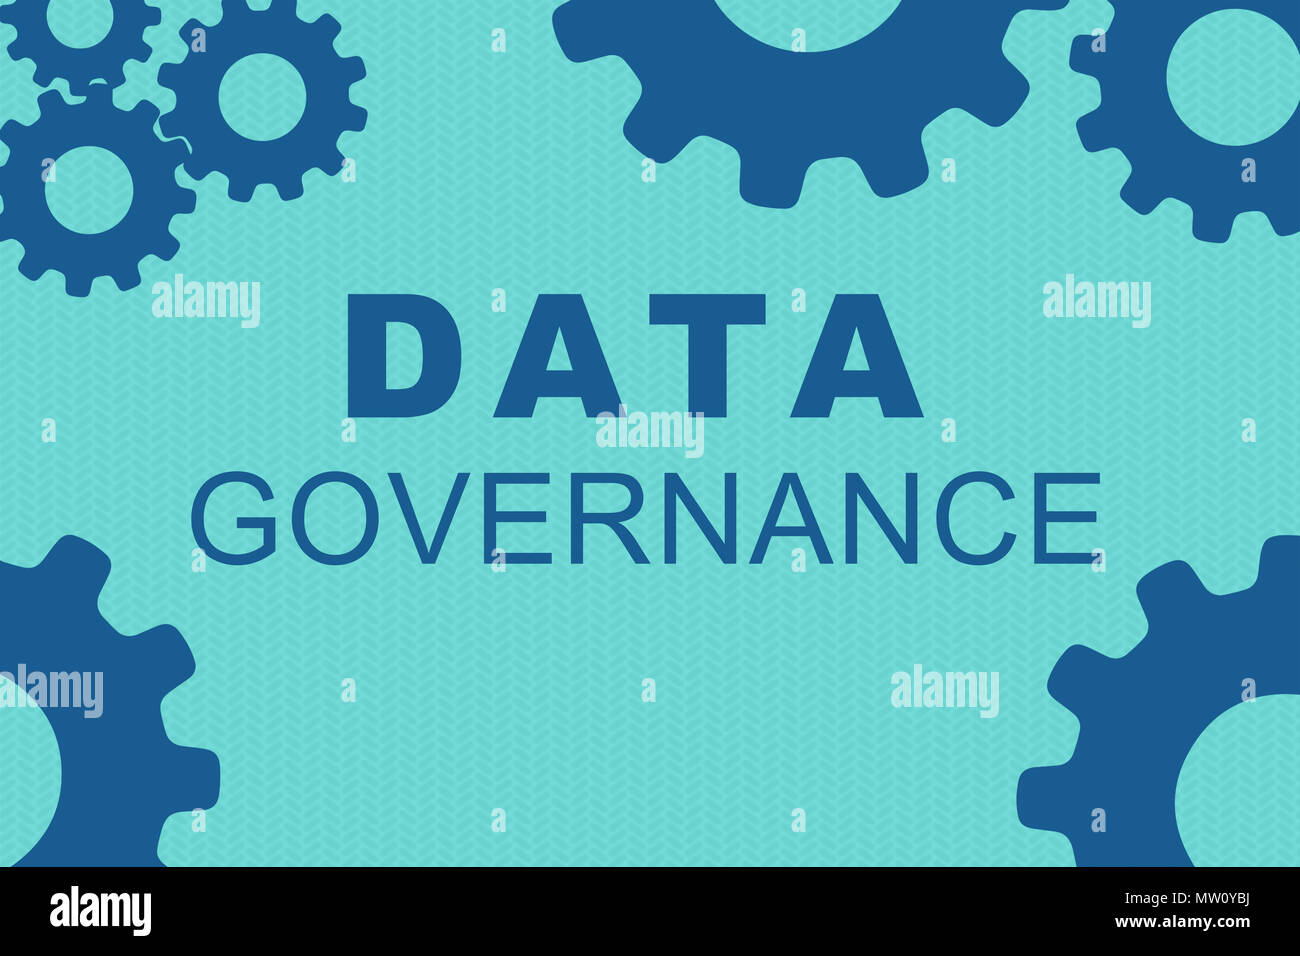 DATA GOVERNANCE sign concept illustration with blue gear wheel figures on pale blue background - Stock Image